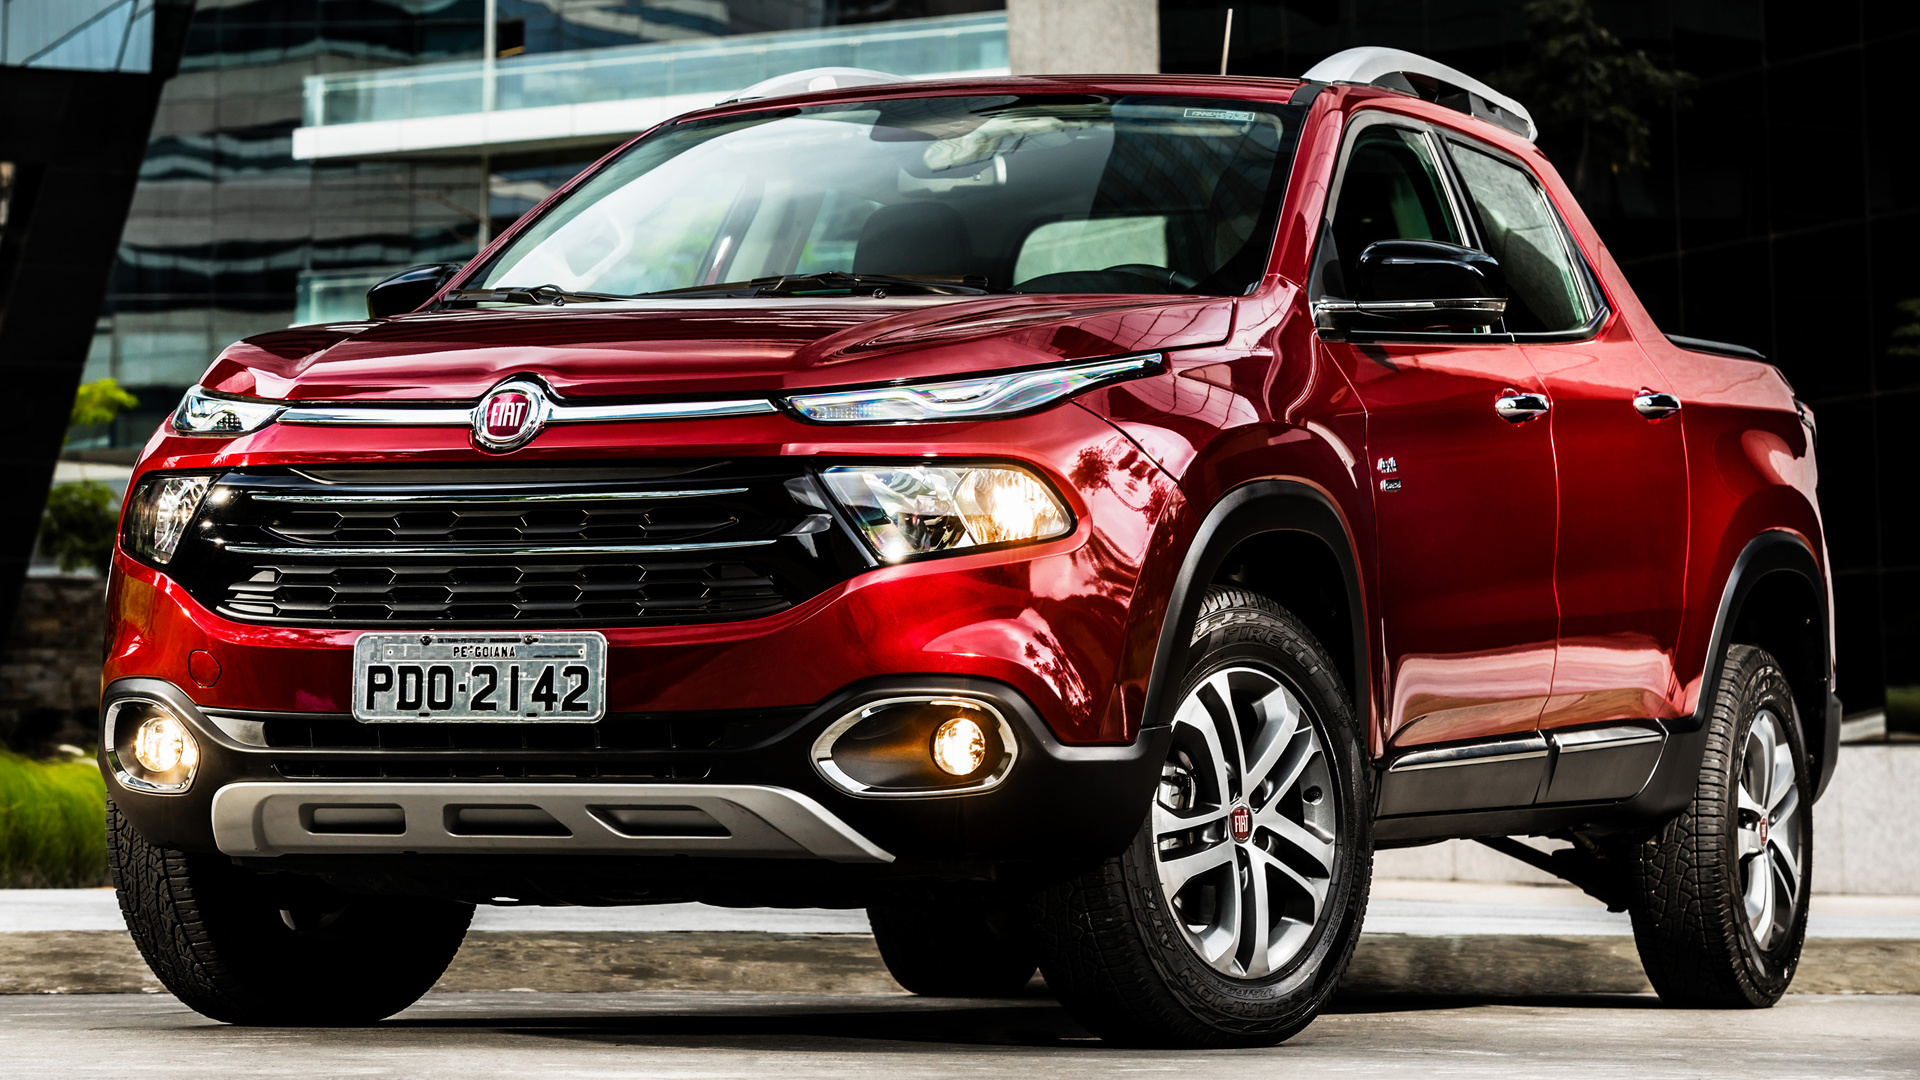 2016 Fiat Toro Volcano - Wallpapers and HD Images | Car Pixel